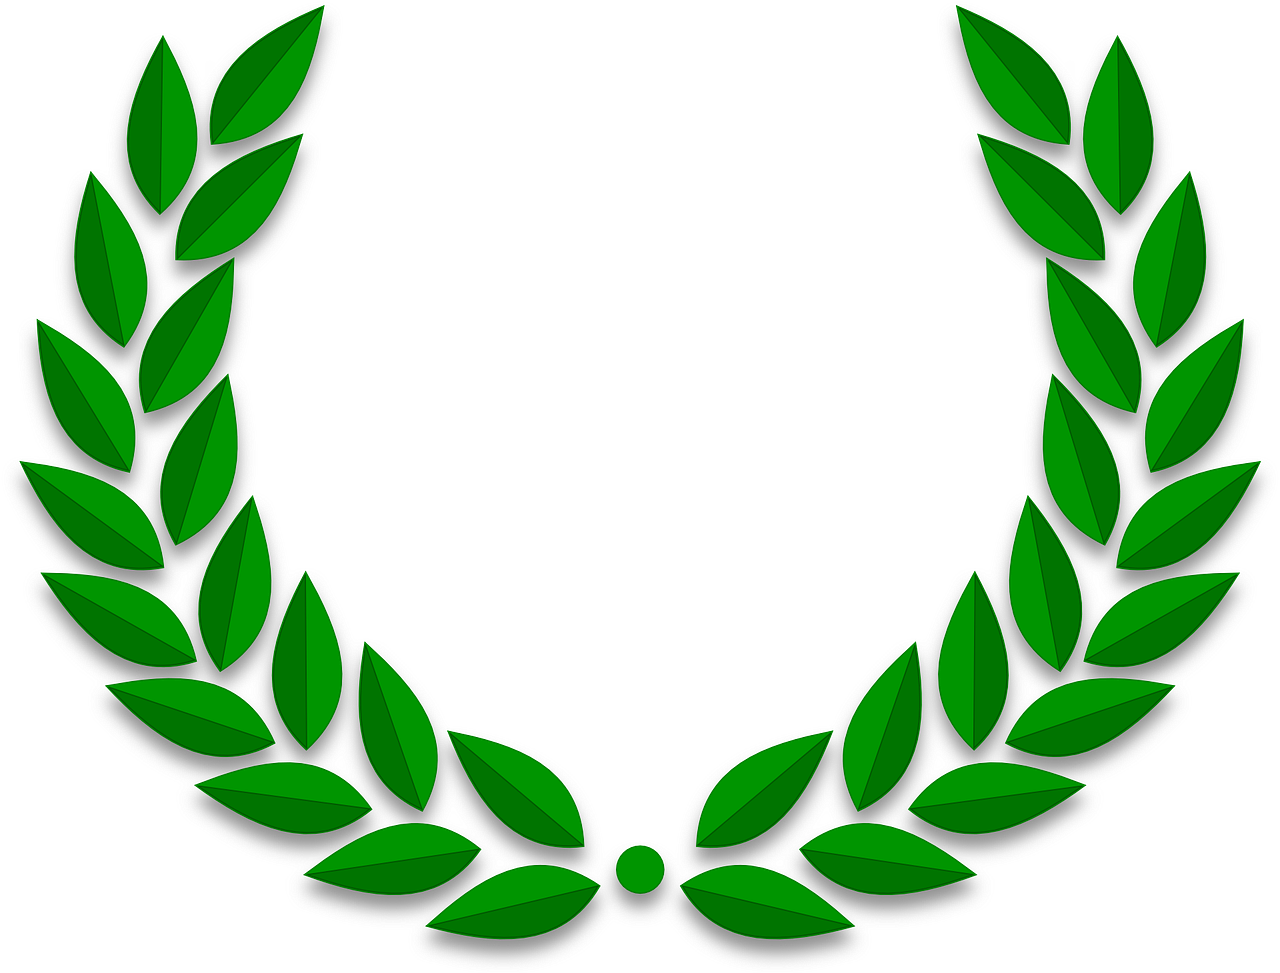 olive,leaves,branches,wreath,olympics,laurels,honor,award,prize,free vector graphics,free pictures, free photos, free images, royalty free, free illustrations, public domain